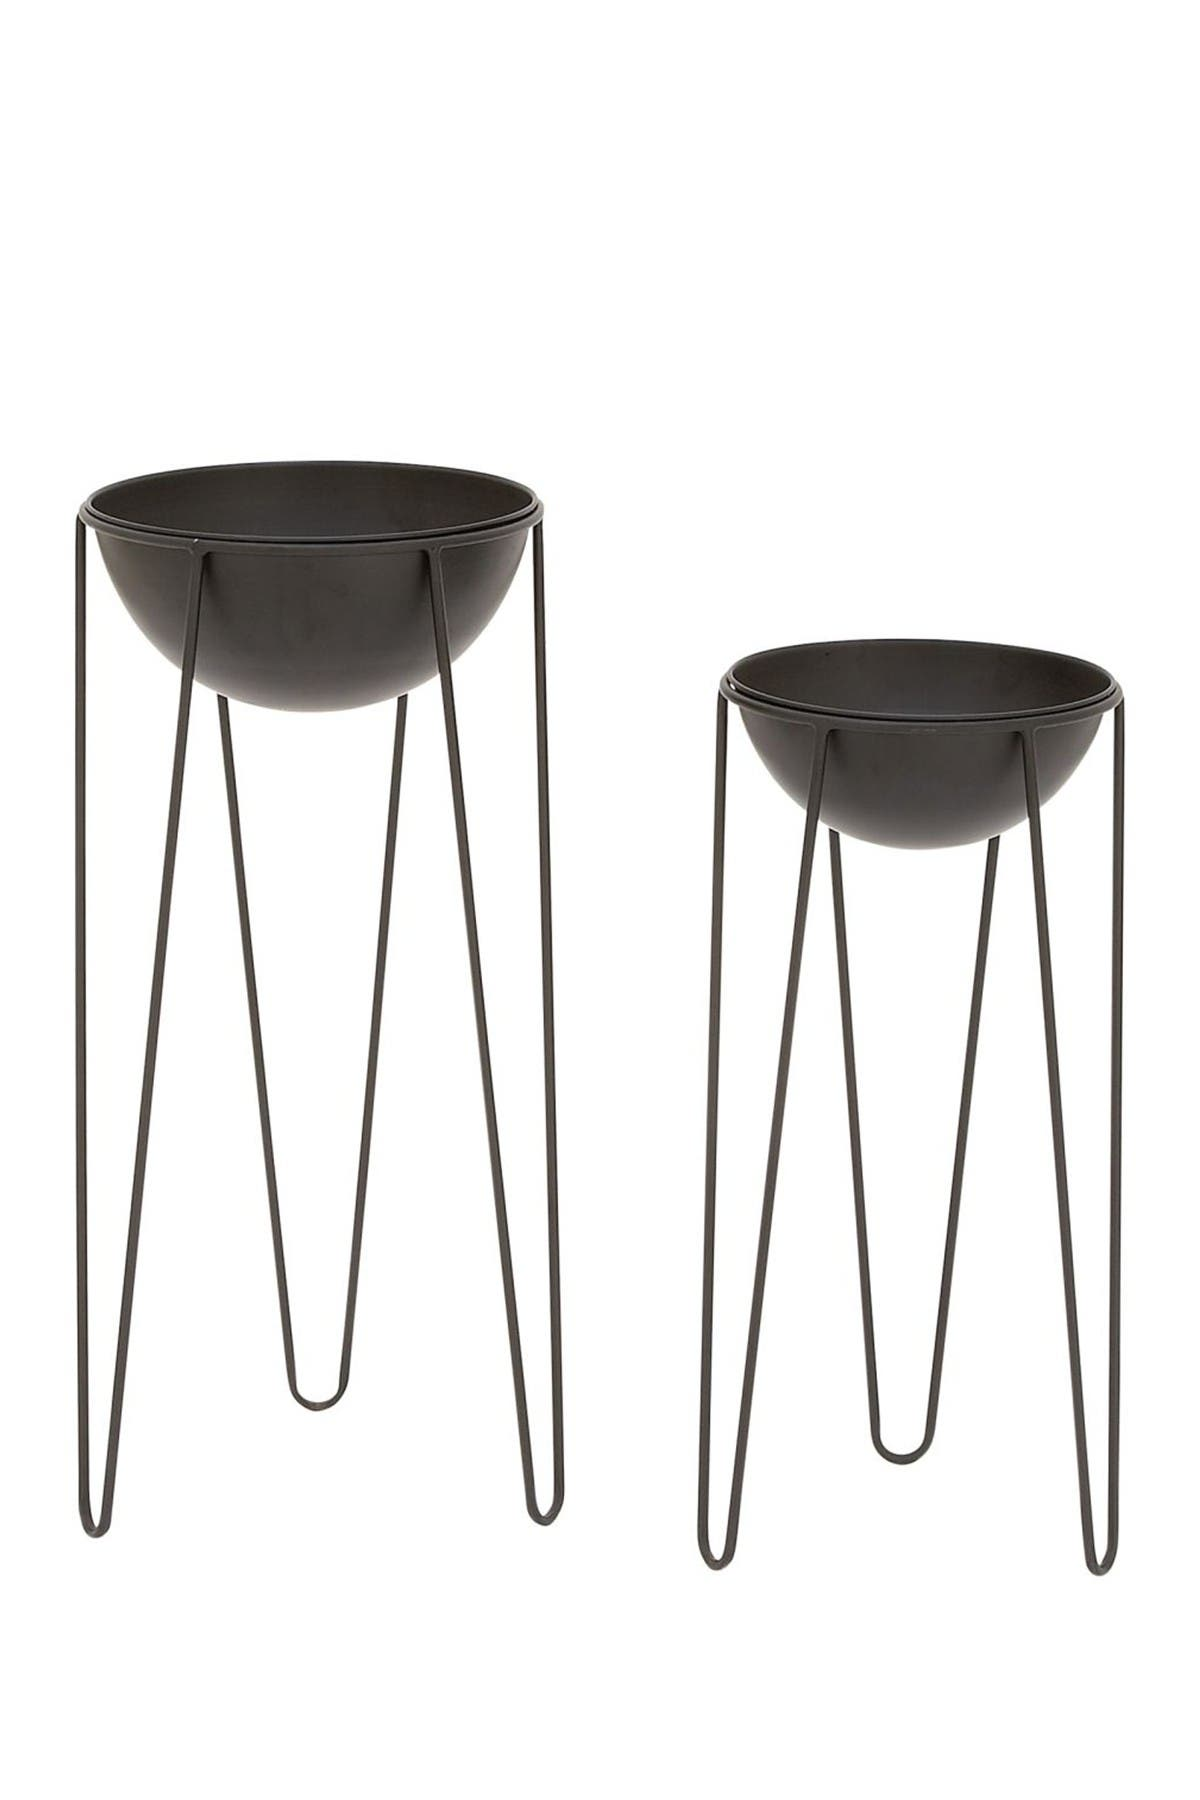 Image of Willow Row Black Modern Dome Planter - Set of 2